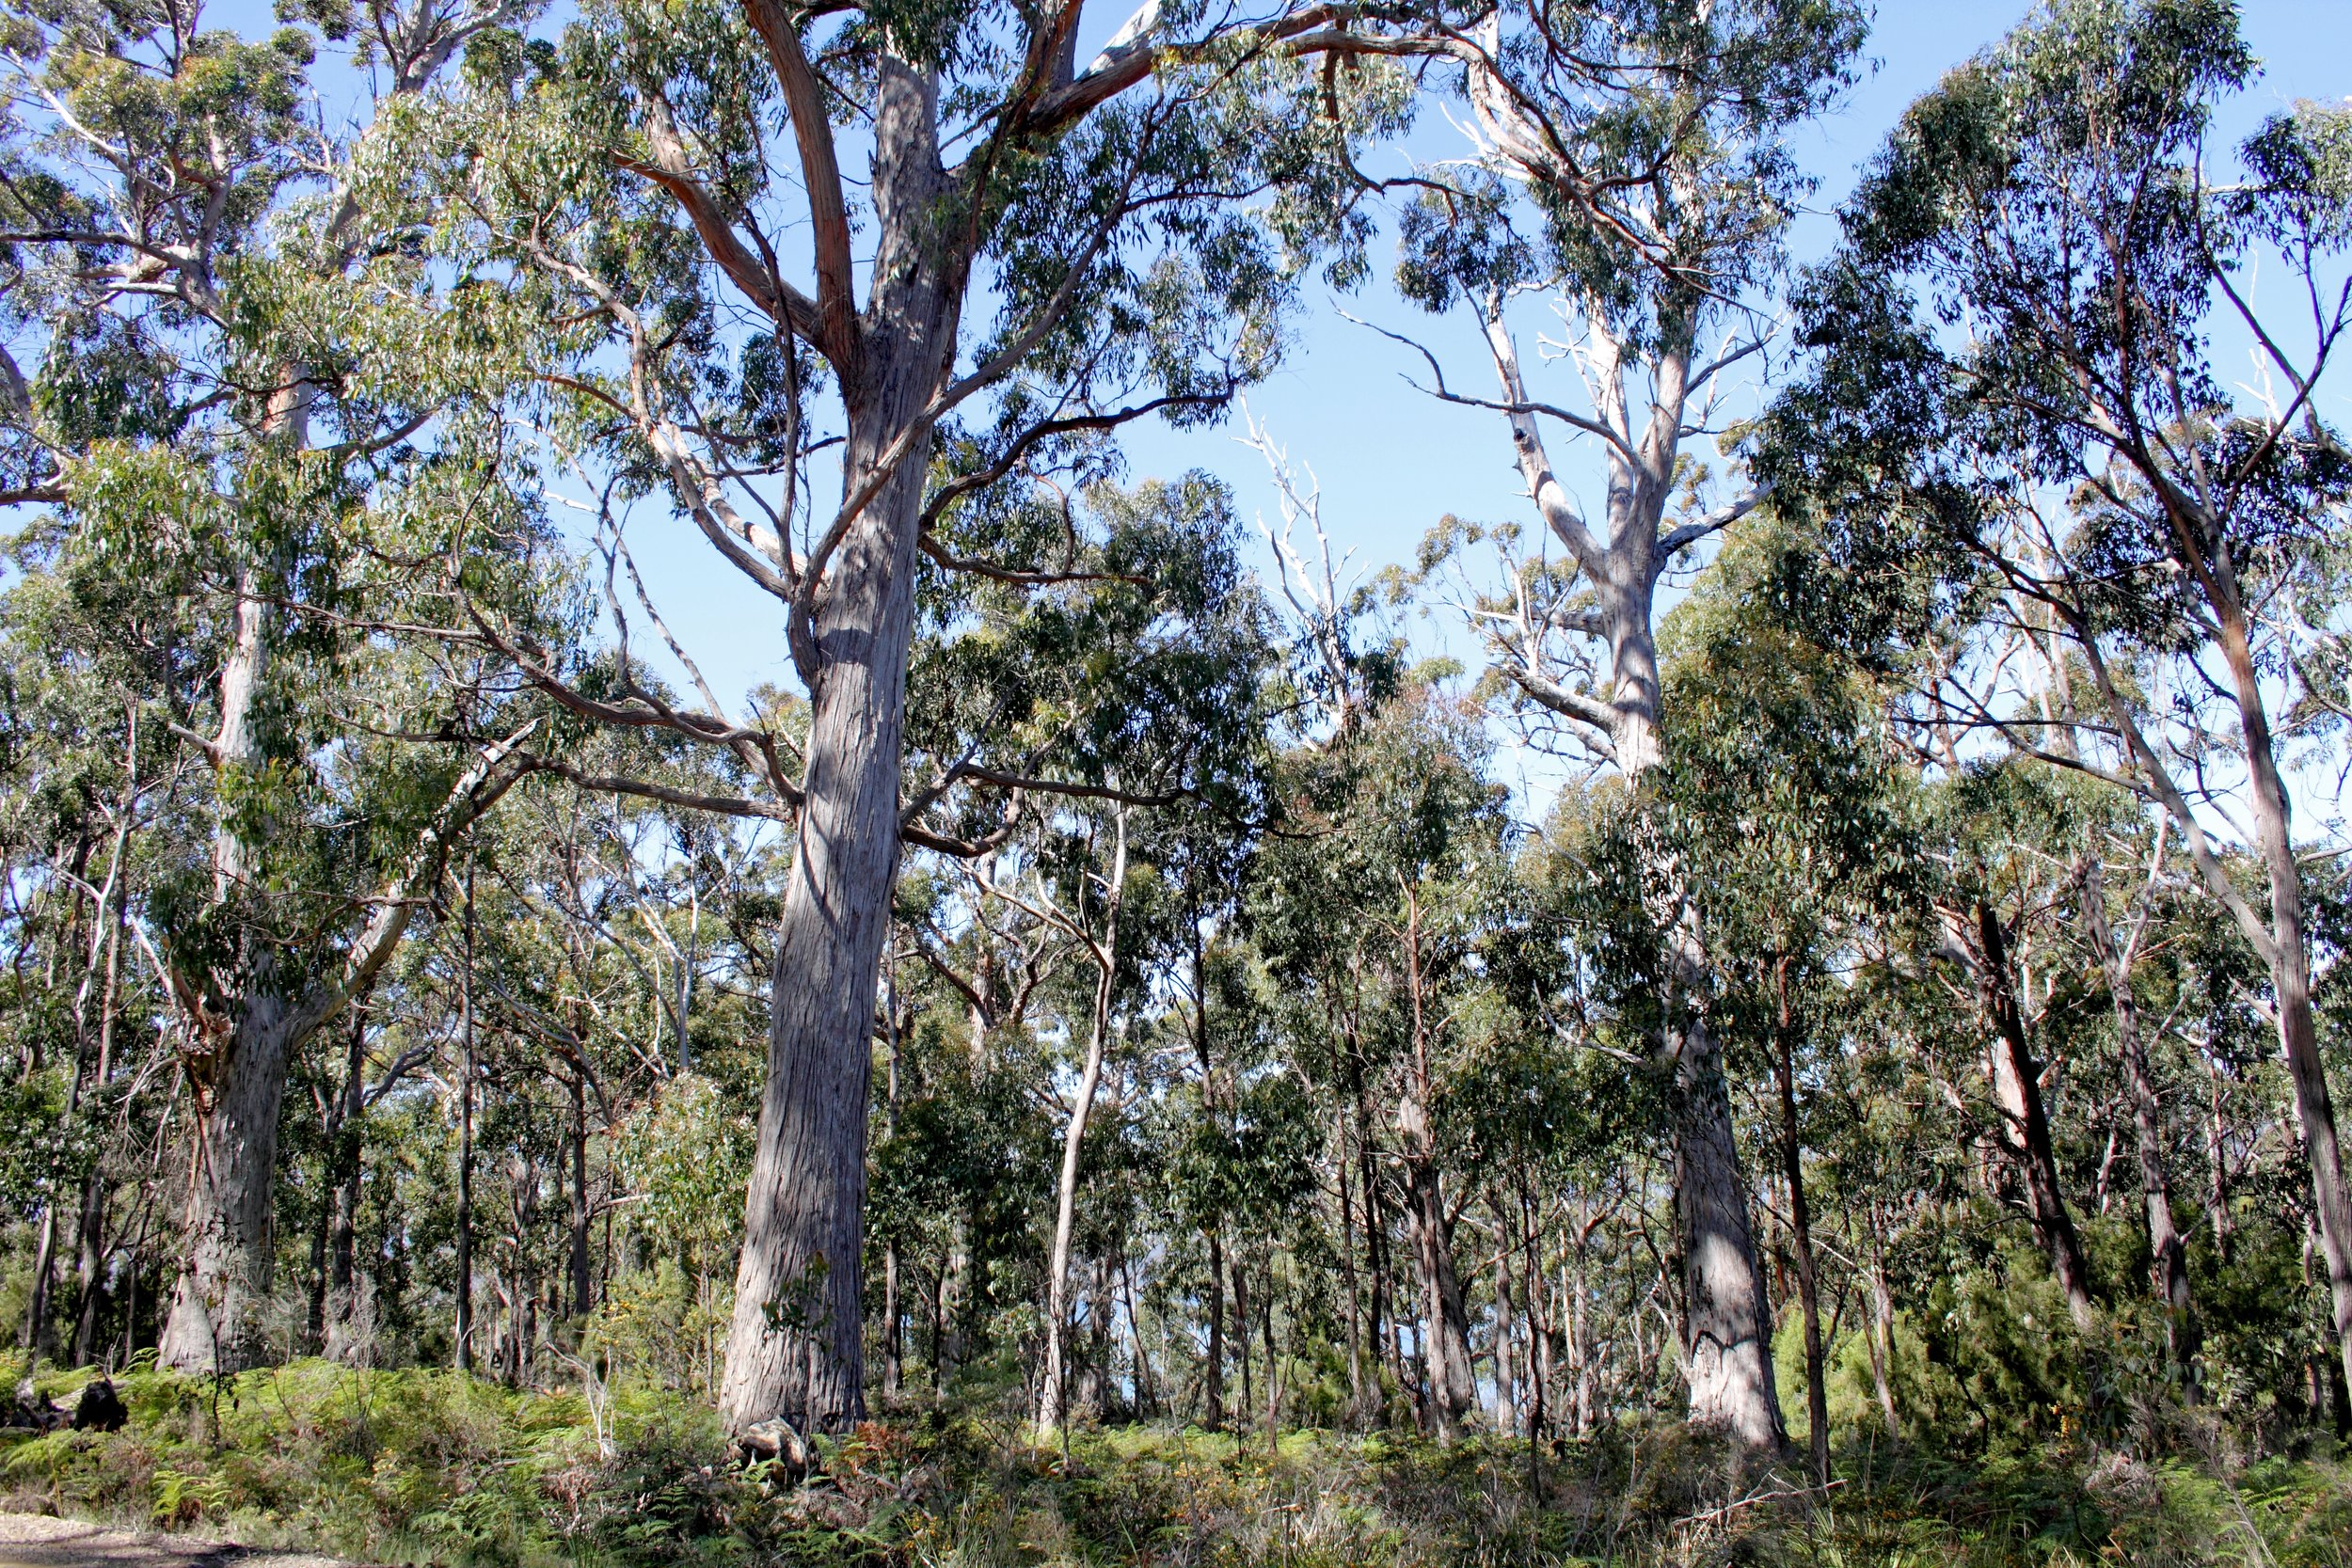 - BirdLife Australia is calling on the Australian Government to terminate the Tasmanian Regional Forest Agreement that is hastening the extinction of the Endangered Swift Parrot and to immediately stop logging Swift Parrot breeding habitat.We are also asking the Tasmanian Government to permanently protect Swift Parrot habitat on Bruny Island and mature forests across the South-east Tasmania KBA.